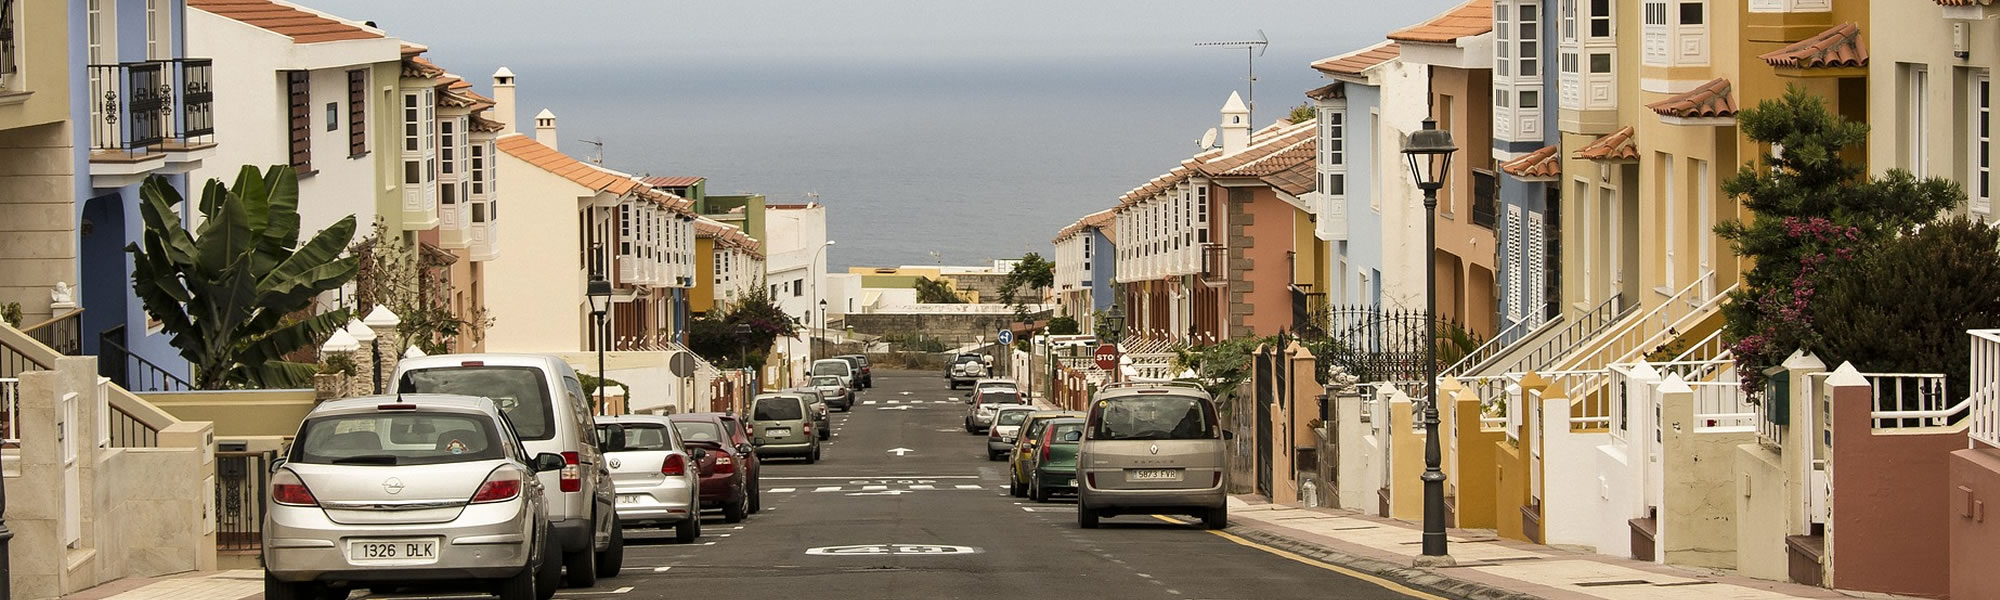 Cities in Fuerteventura